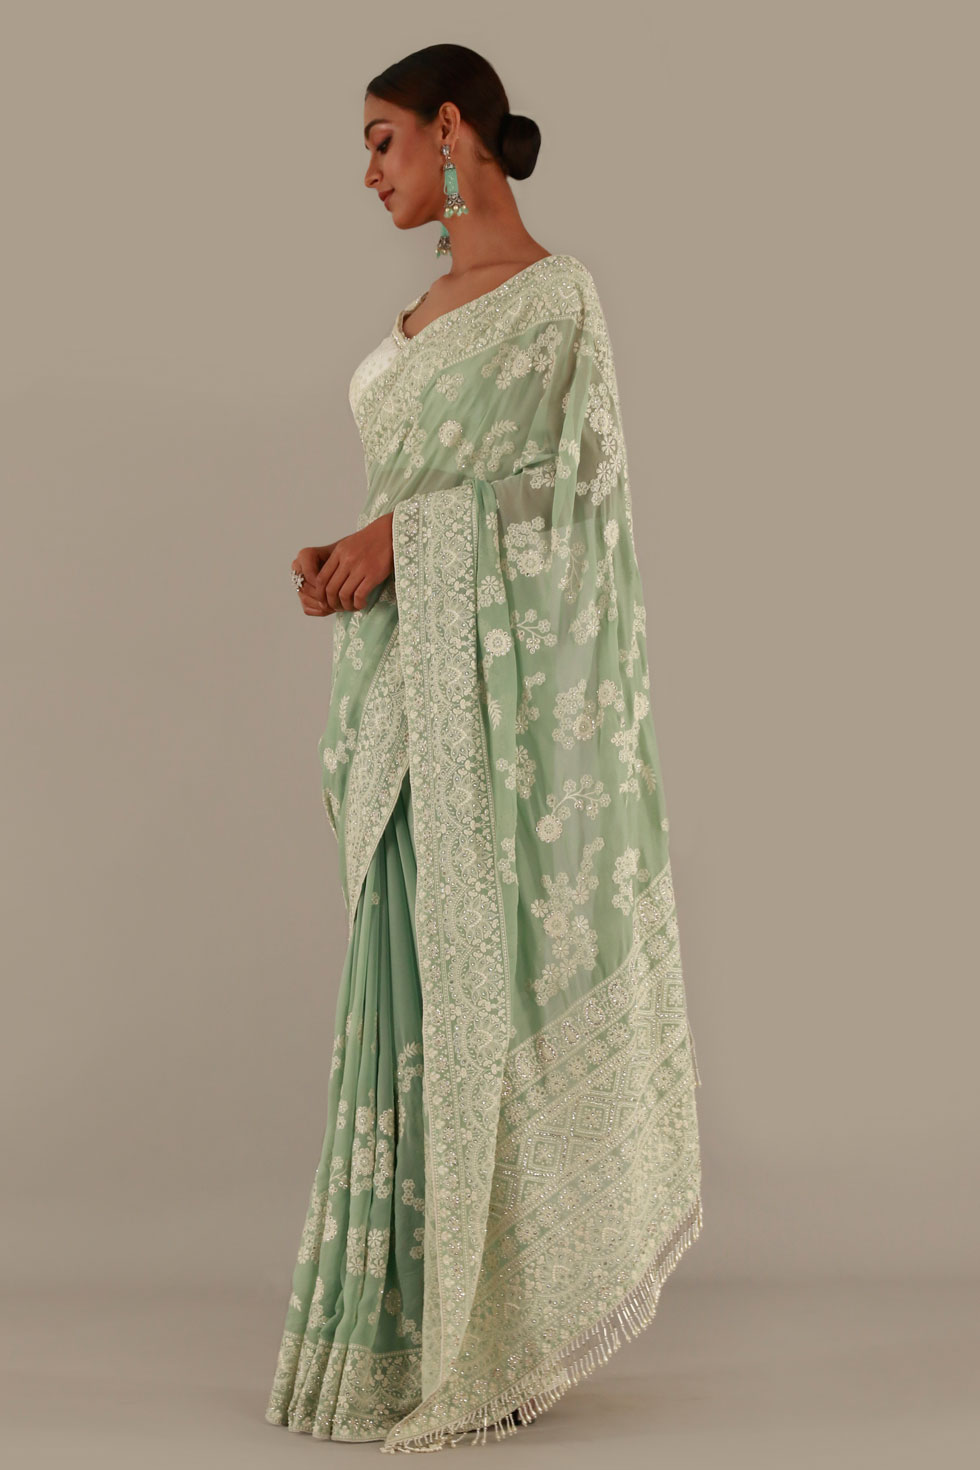 Mint green classic saree with contrast ivory choli and pearl and stone embellishments